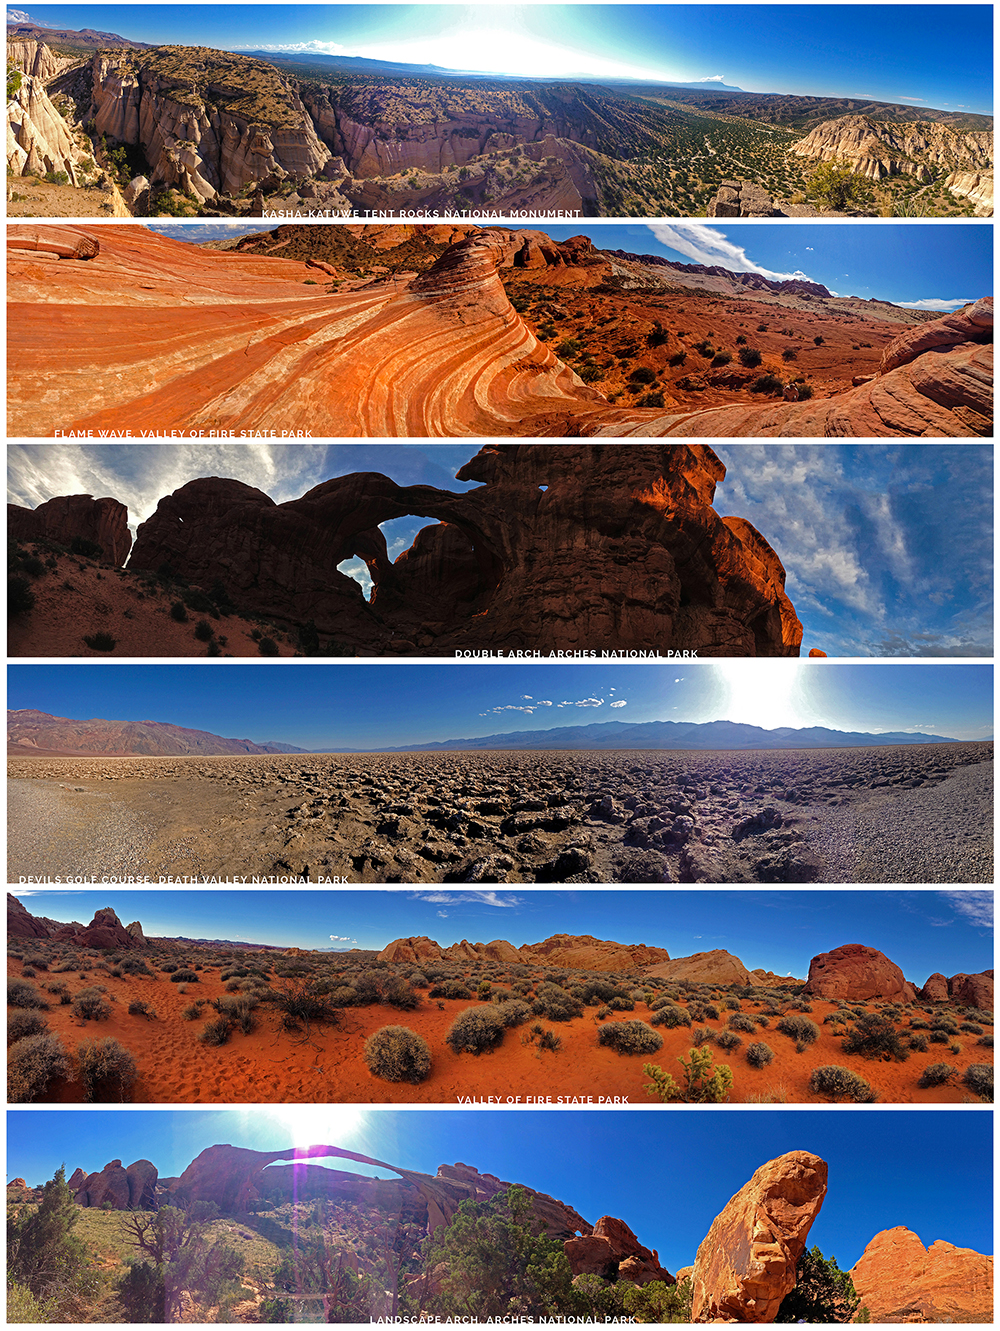 American Southwest 2014 Panorama Poster_07_2